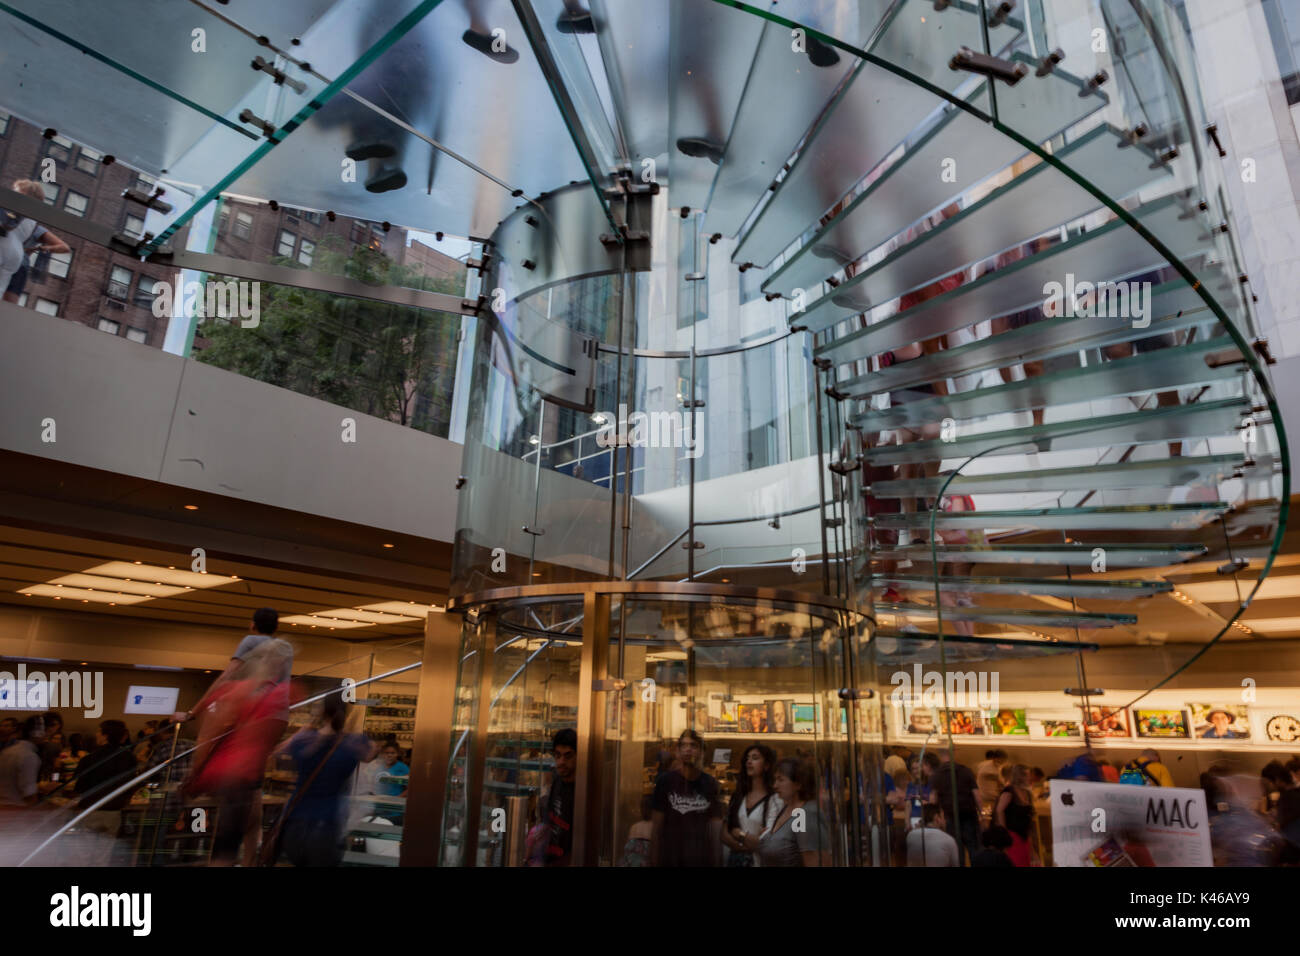 Tourists in the famous glass stairs of the the cube, Apple Store in 5th avenue, Manhattan, New York City. Stock Photo